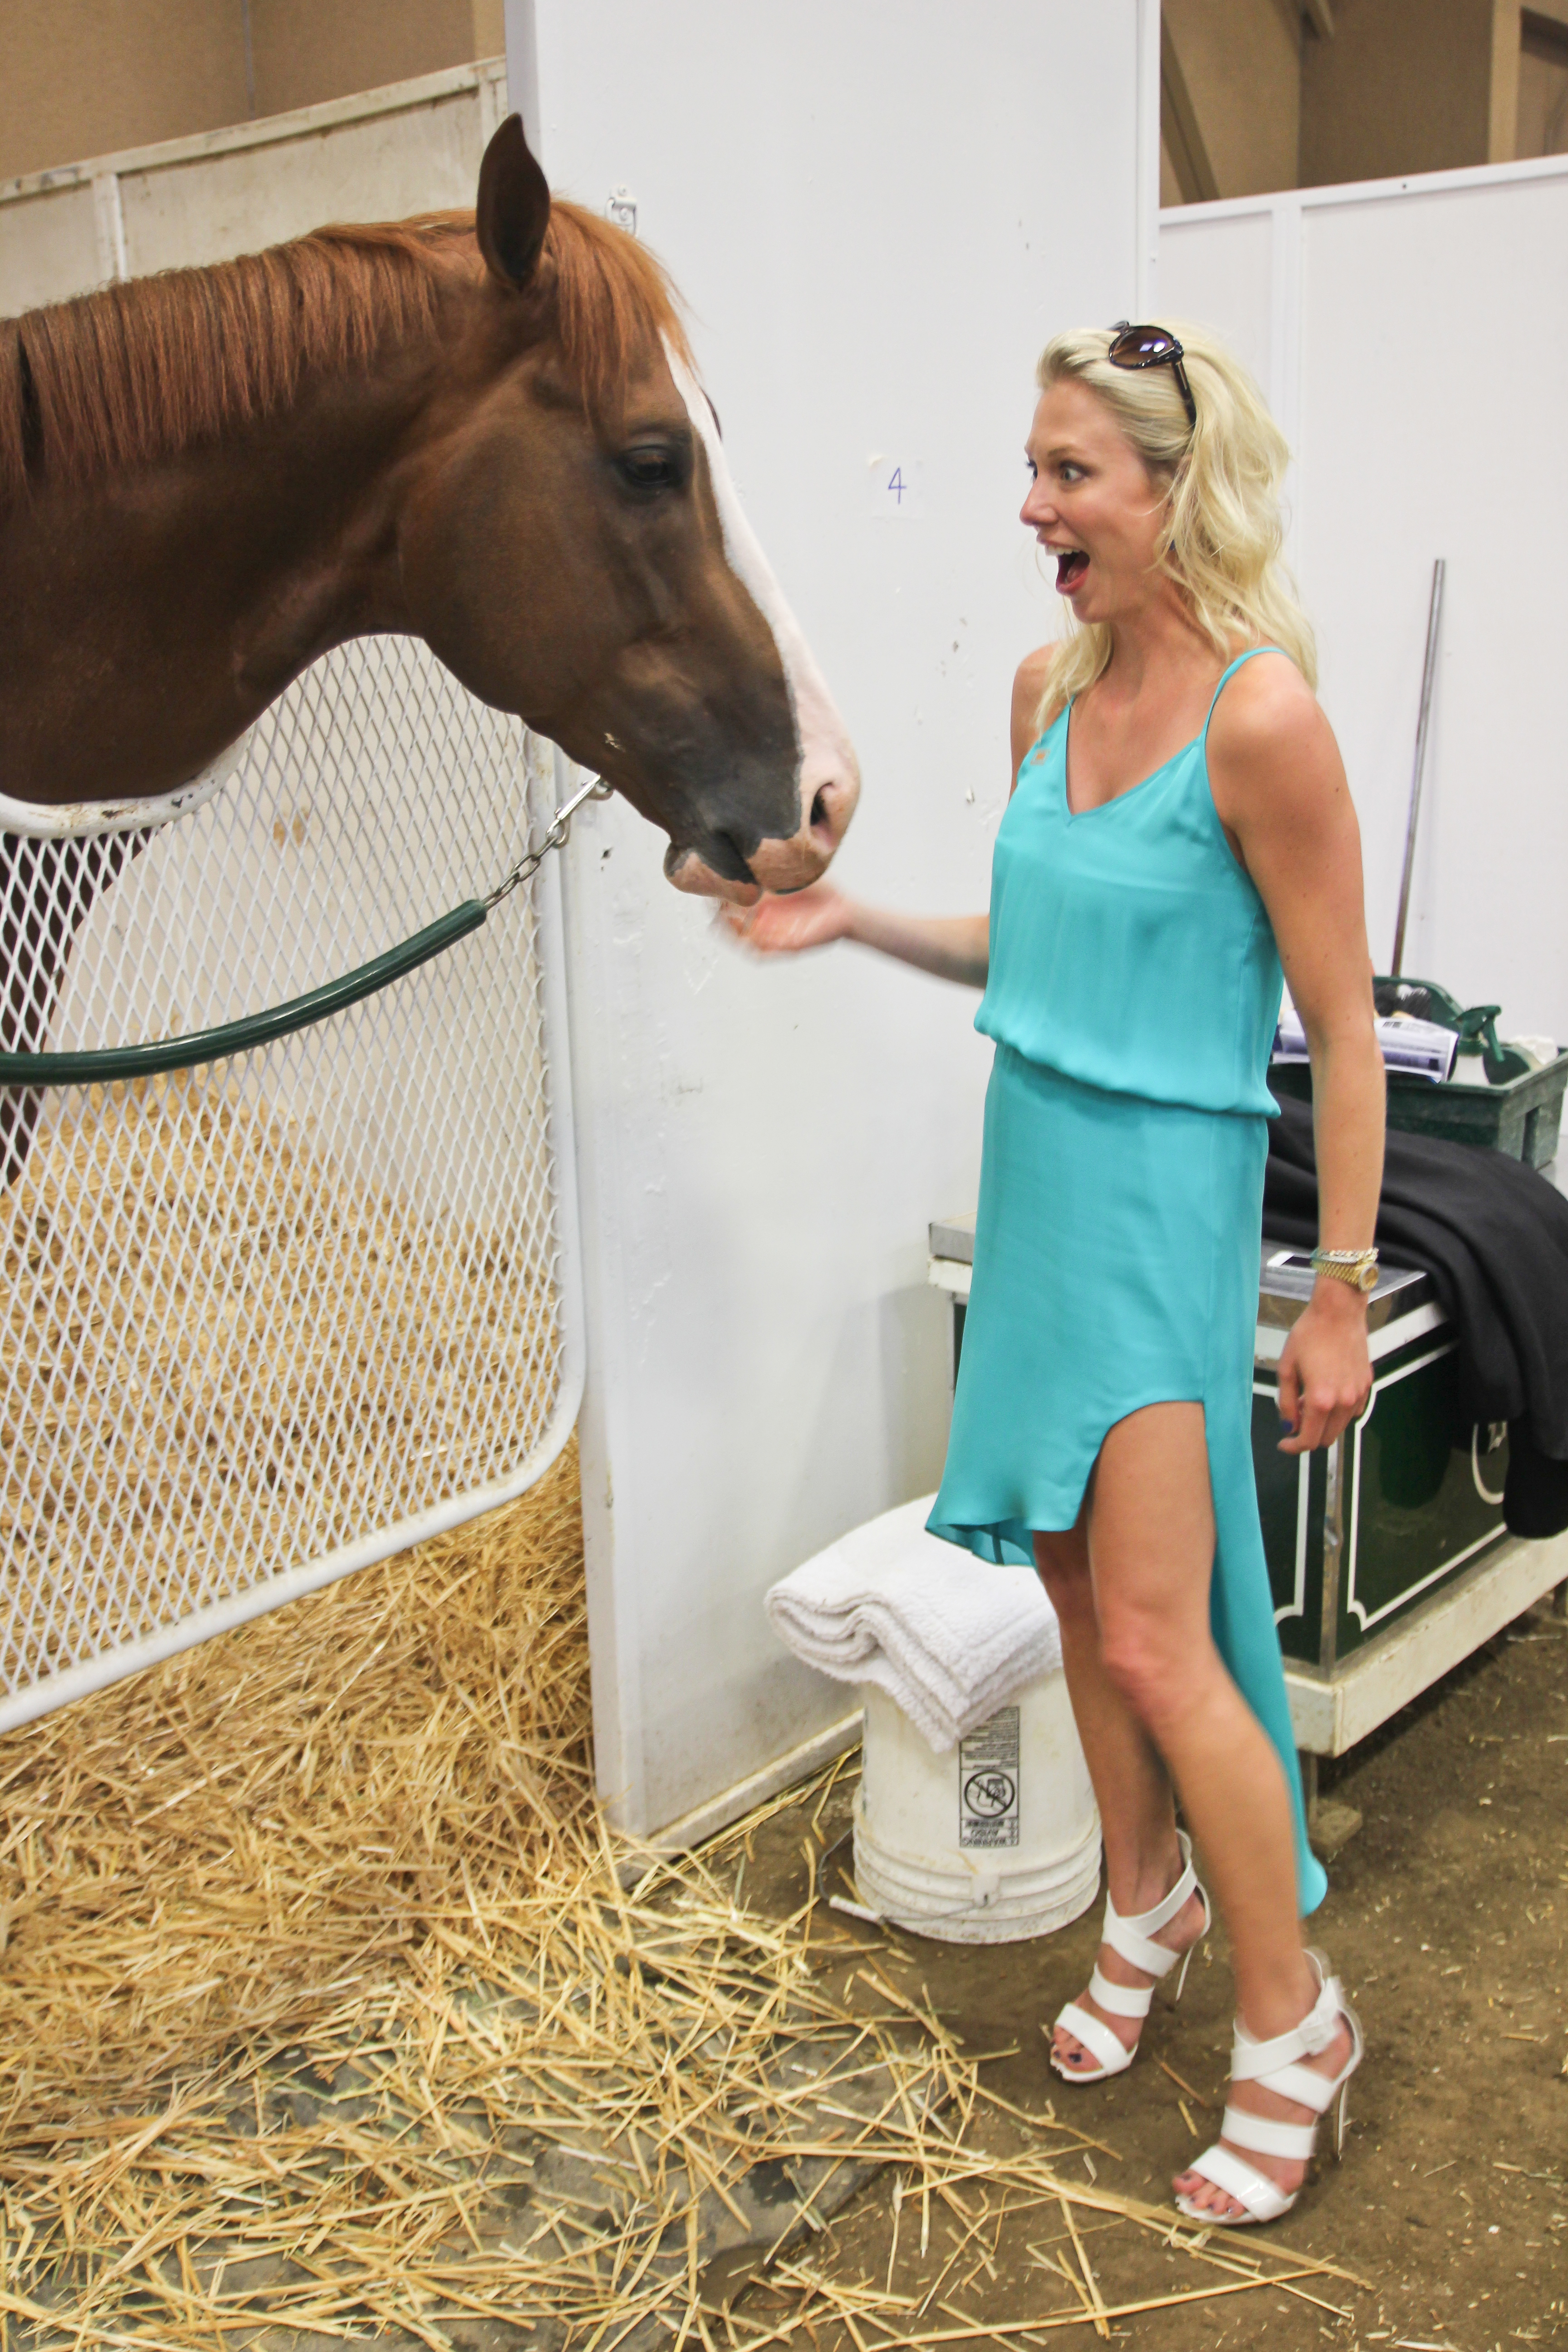 Mary Rambin surprised by horse